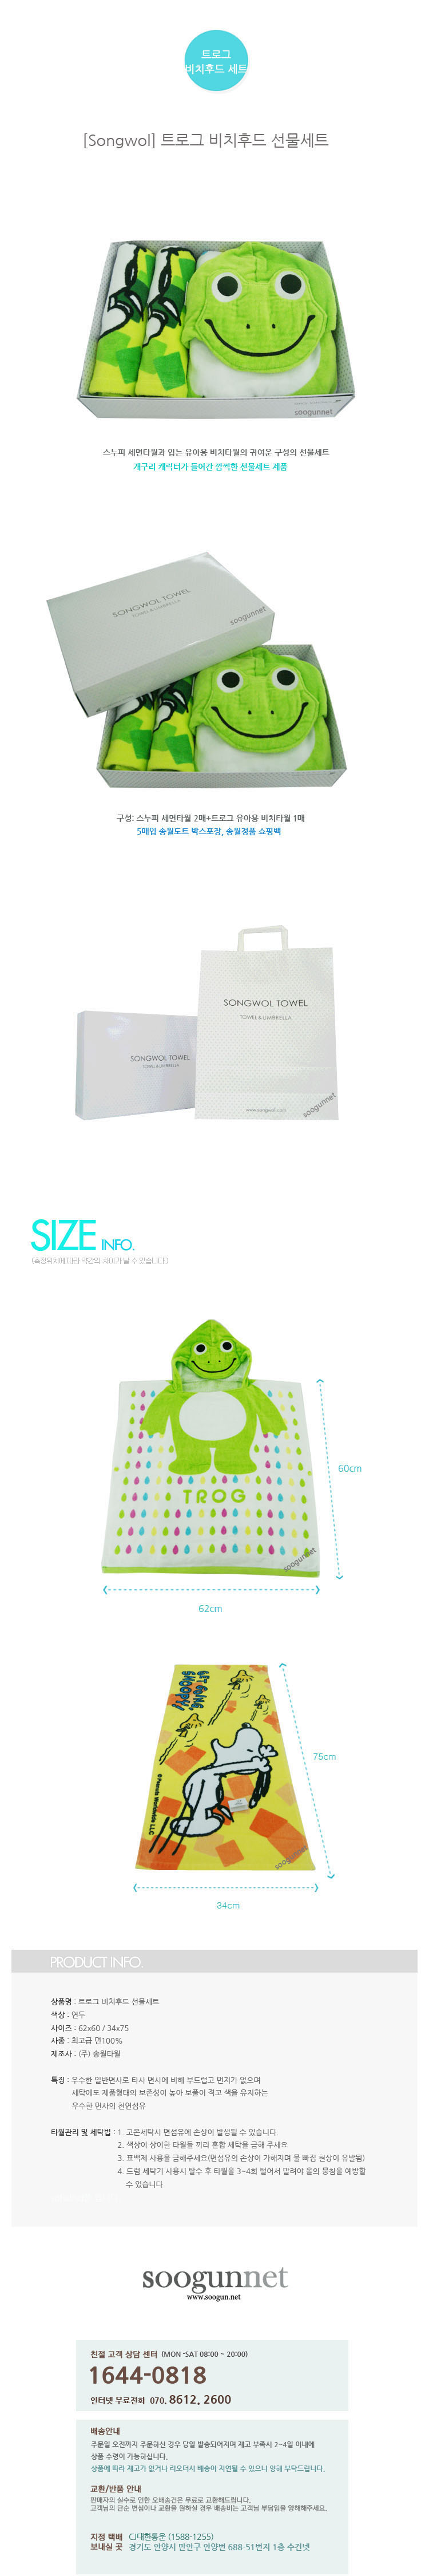 [ songwol ] Trog Beach Hooded Towel Gift Set (2 Face + 1 Beach)